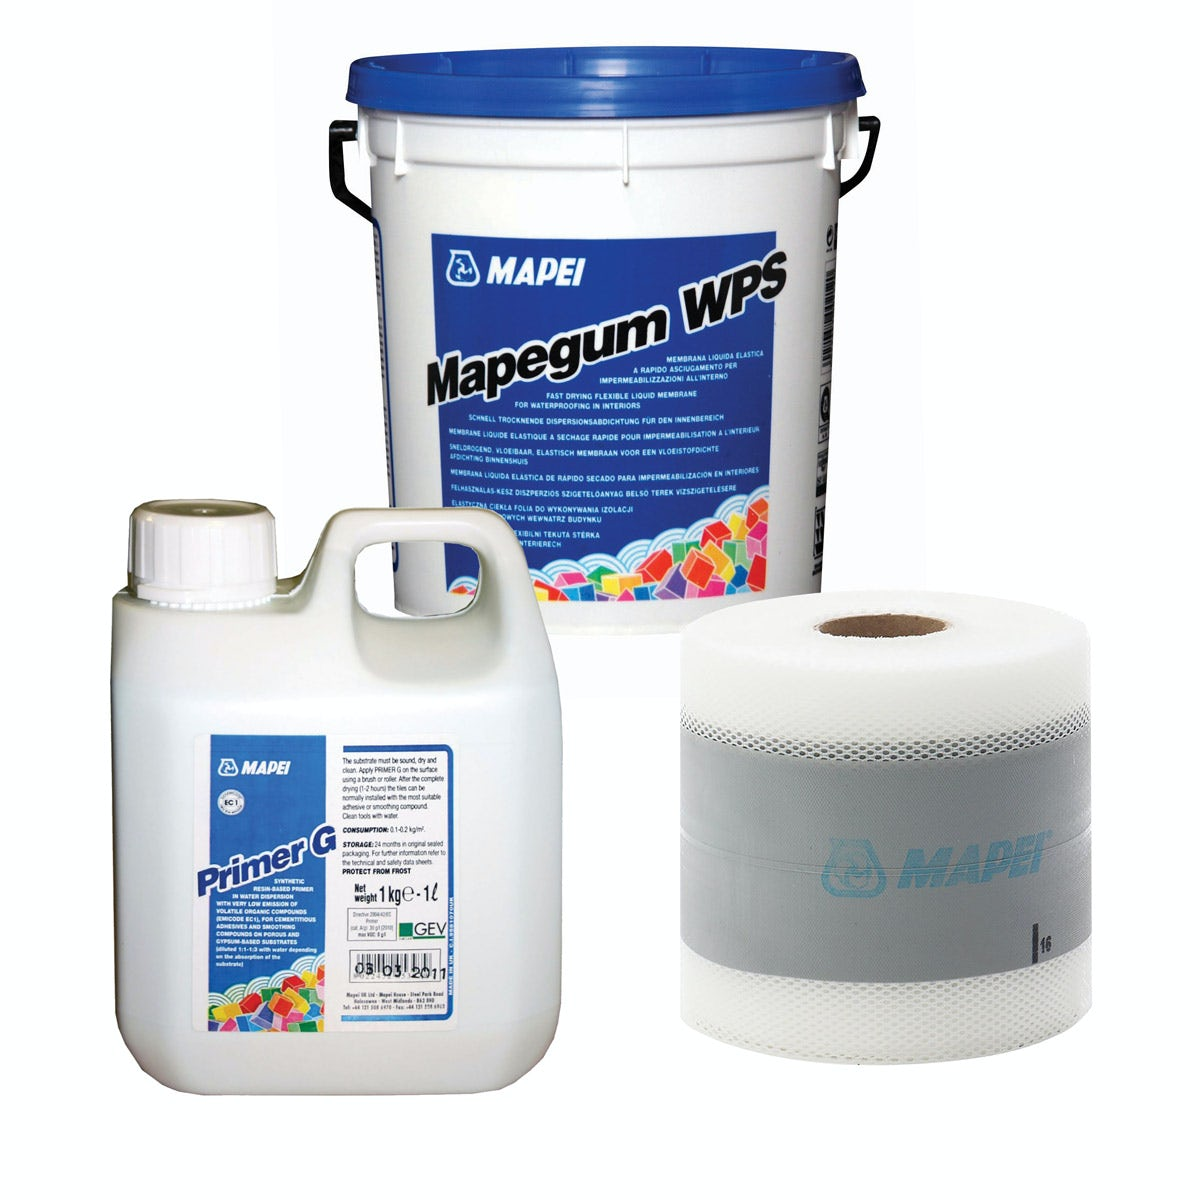 AKW Mapei 5m tanking kit - Sold by Victoria Plum